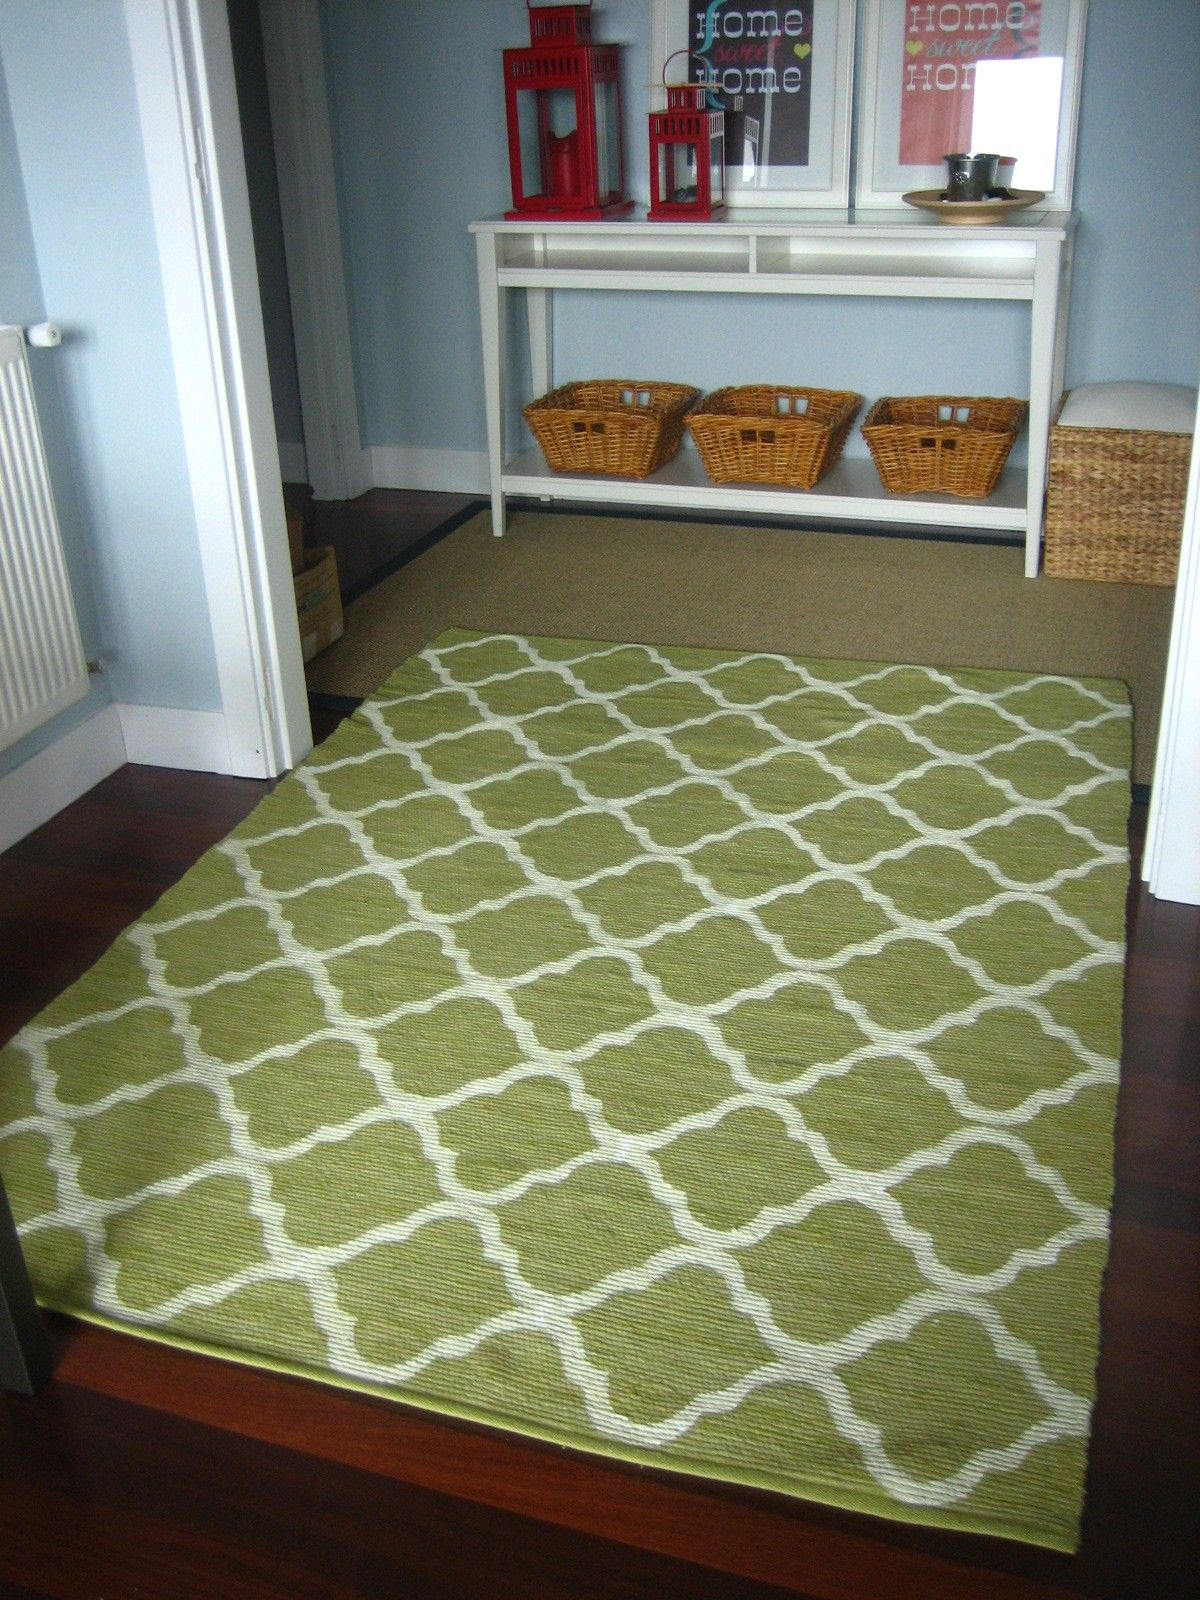 ikea everything mats know wooden bamboo bath carpet floor rug need amazing to you mat over